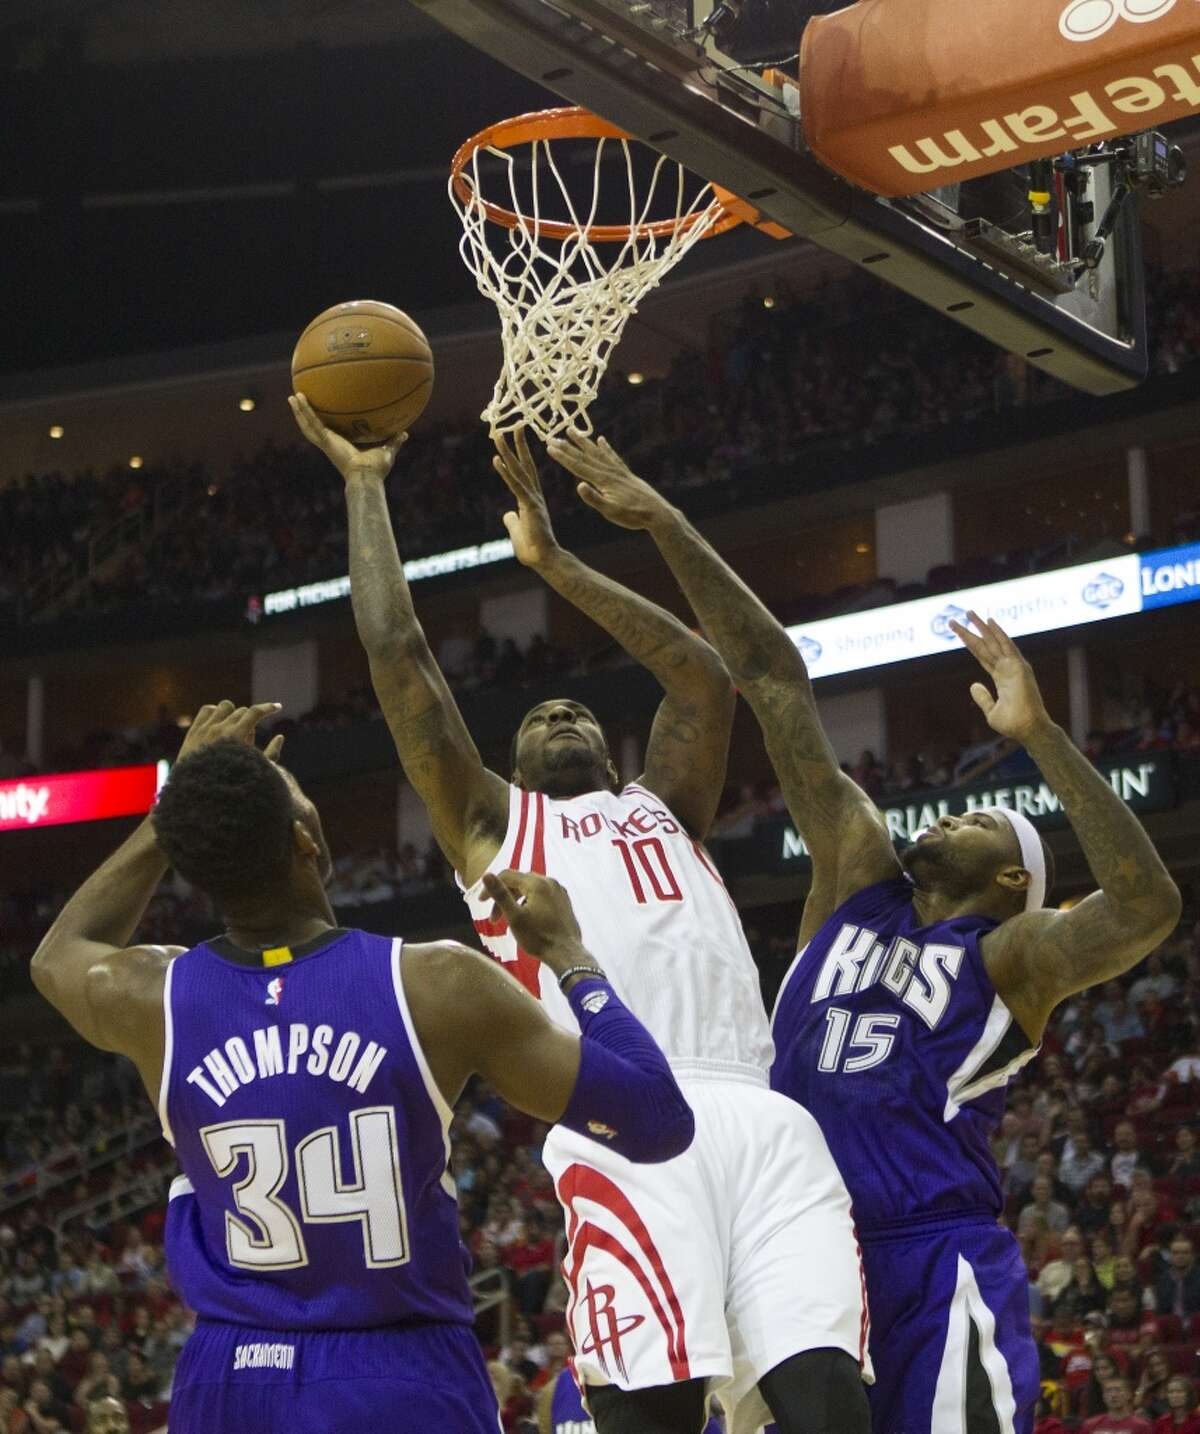 Sacramento Kings forward Jason Thompson and center DeMarcus Cousins defend as Houston Rockets forward Tarik Black goes up for a shot during the second half of an NBA game at the Toyota Center, Wednesday, Nov. 26, 2014, in Houston. (Cody Duty / Houston Chronicle)